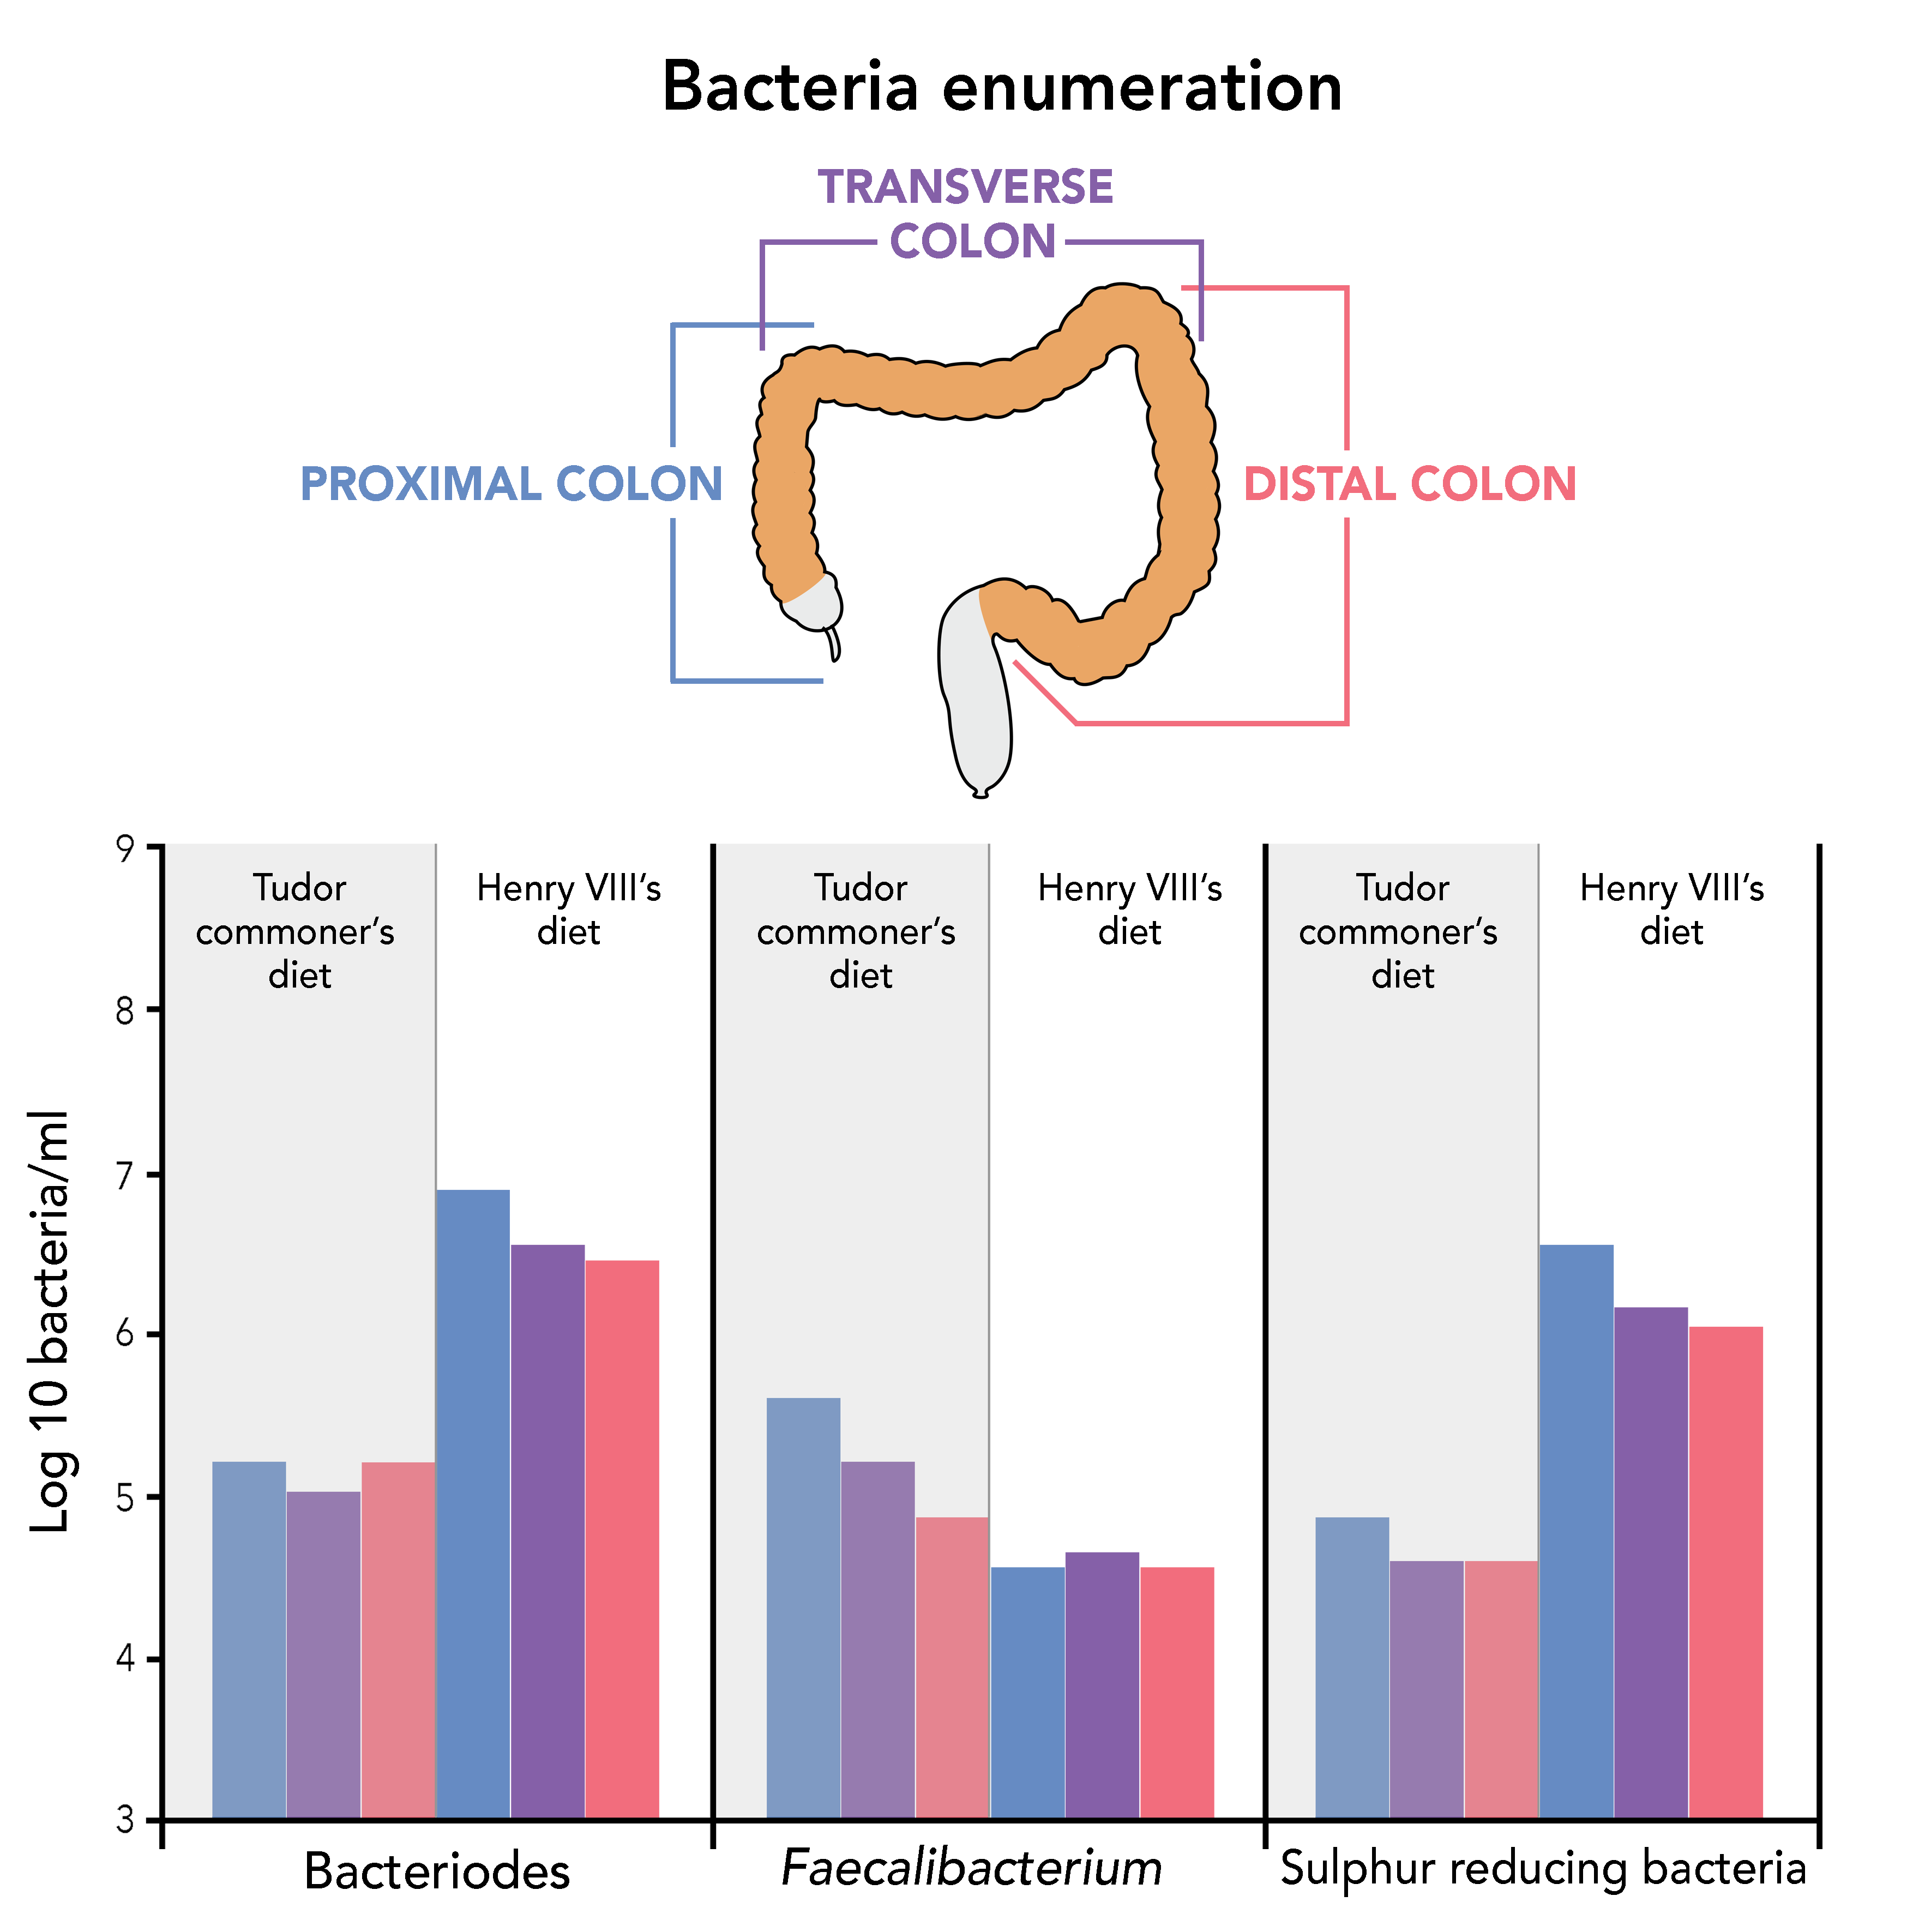 A graph displaying the difference in amount of Log 10 bacteria per millilitre of bacteriodes, faecalibacterium and sulphur reducing bacteria in the proximal colon, transverse colon and distal colon and how this differs between a Tudor commoner's diet and Henry VIII's diet. Henry VIII is shown to have much more bacteriodes and sulphur reducing bacteria and much less faecalibacterium than a Tudor commoners diet.